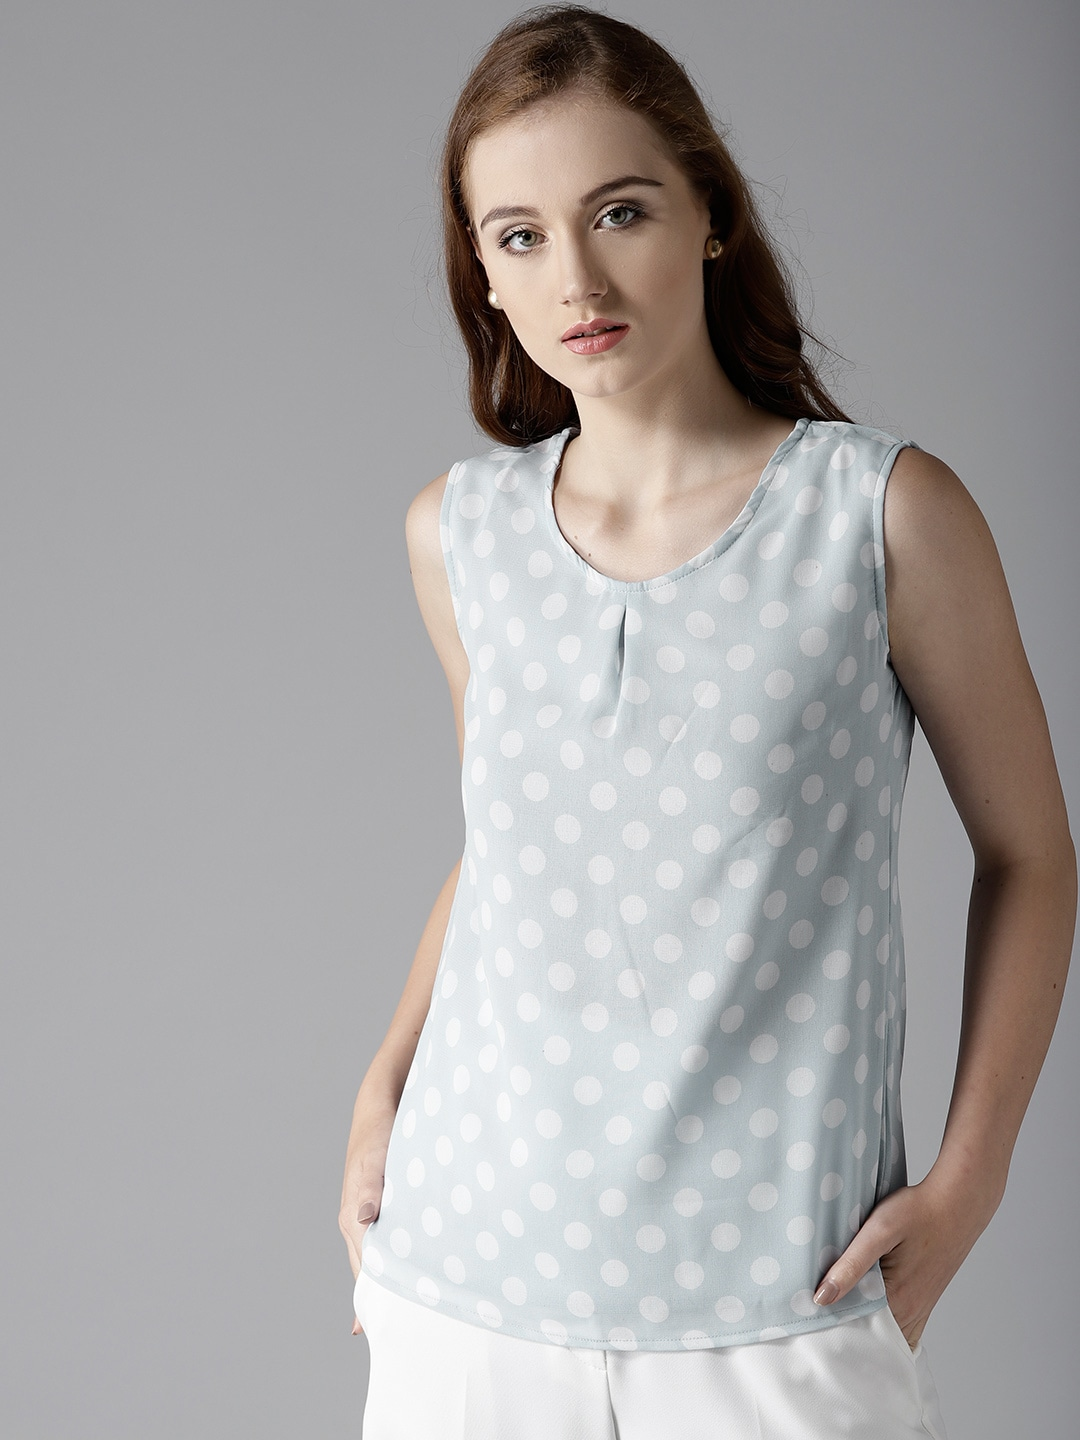 301c48f2d996bd Polka Dot Tops - Buy Polka Dot Tops online in India